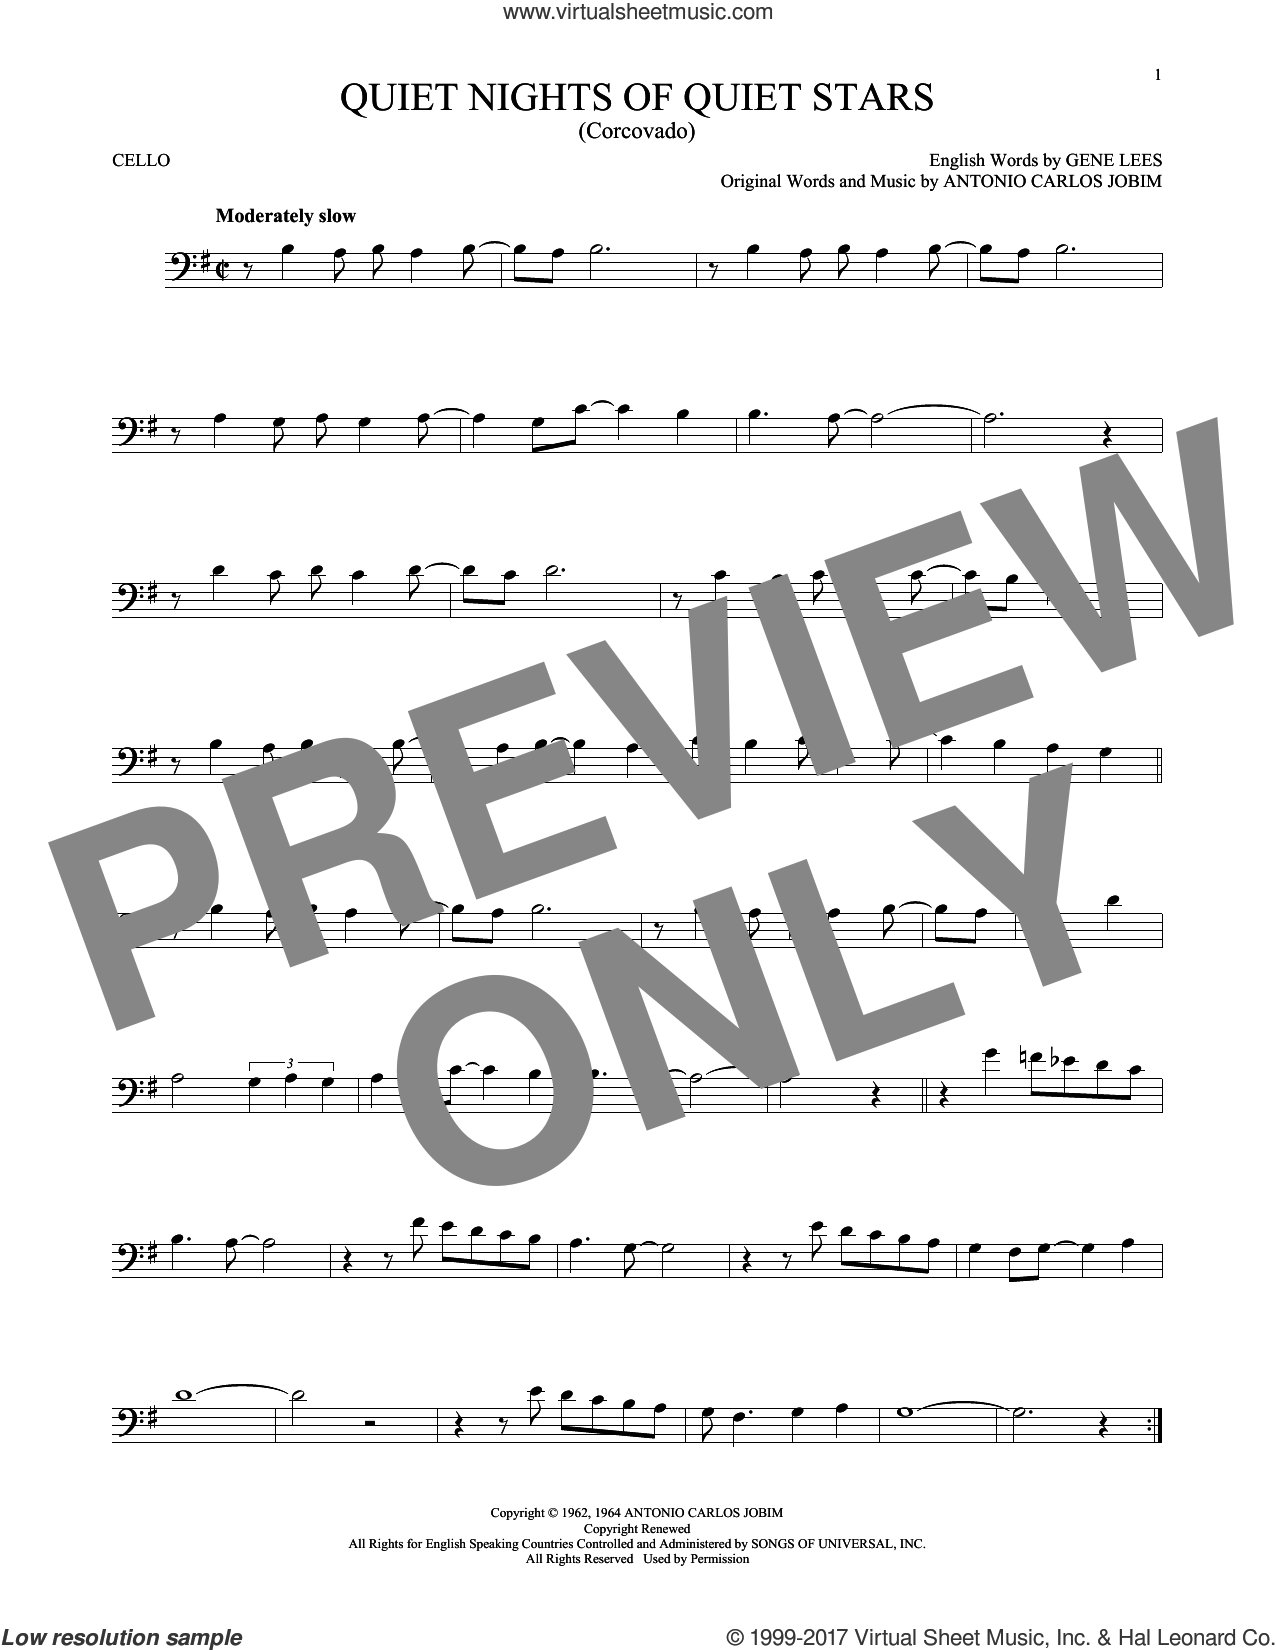 Quiet Nights Of Quiet Stars (Corcovado) sheet music for cello solo by Antonio Carlos Jobim, Andy Williams and Eugene John Lees, intermediate skill level